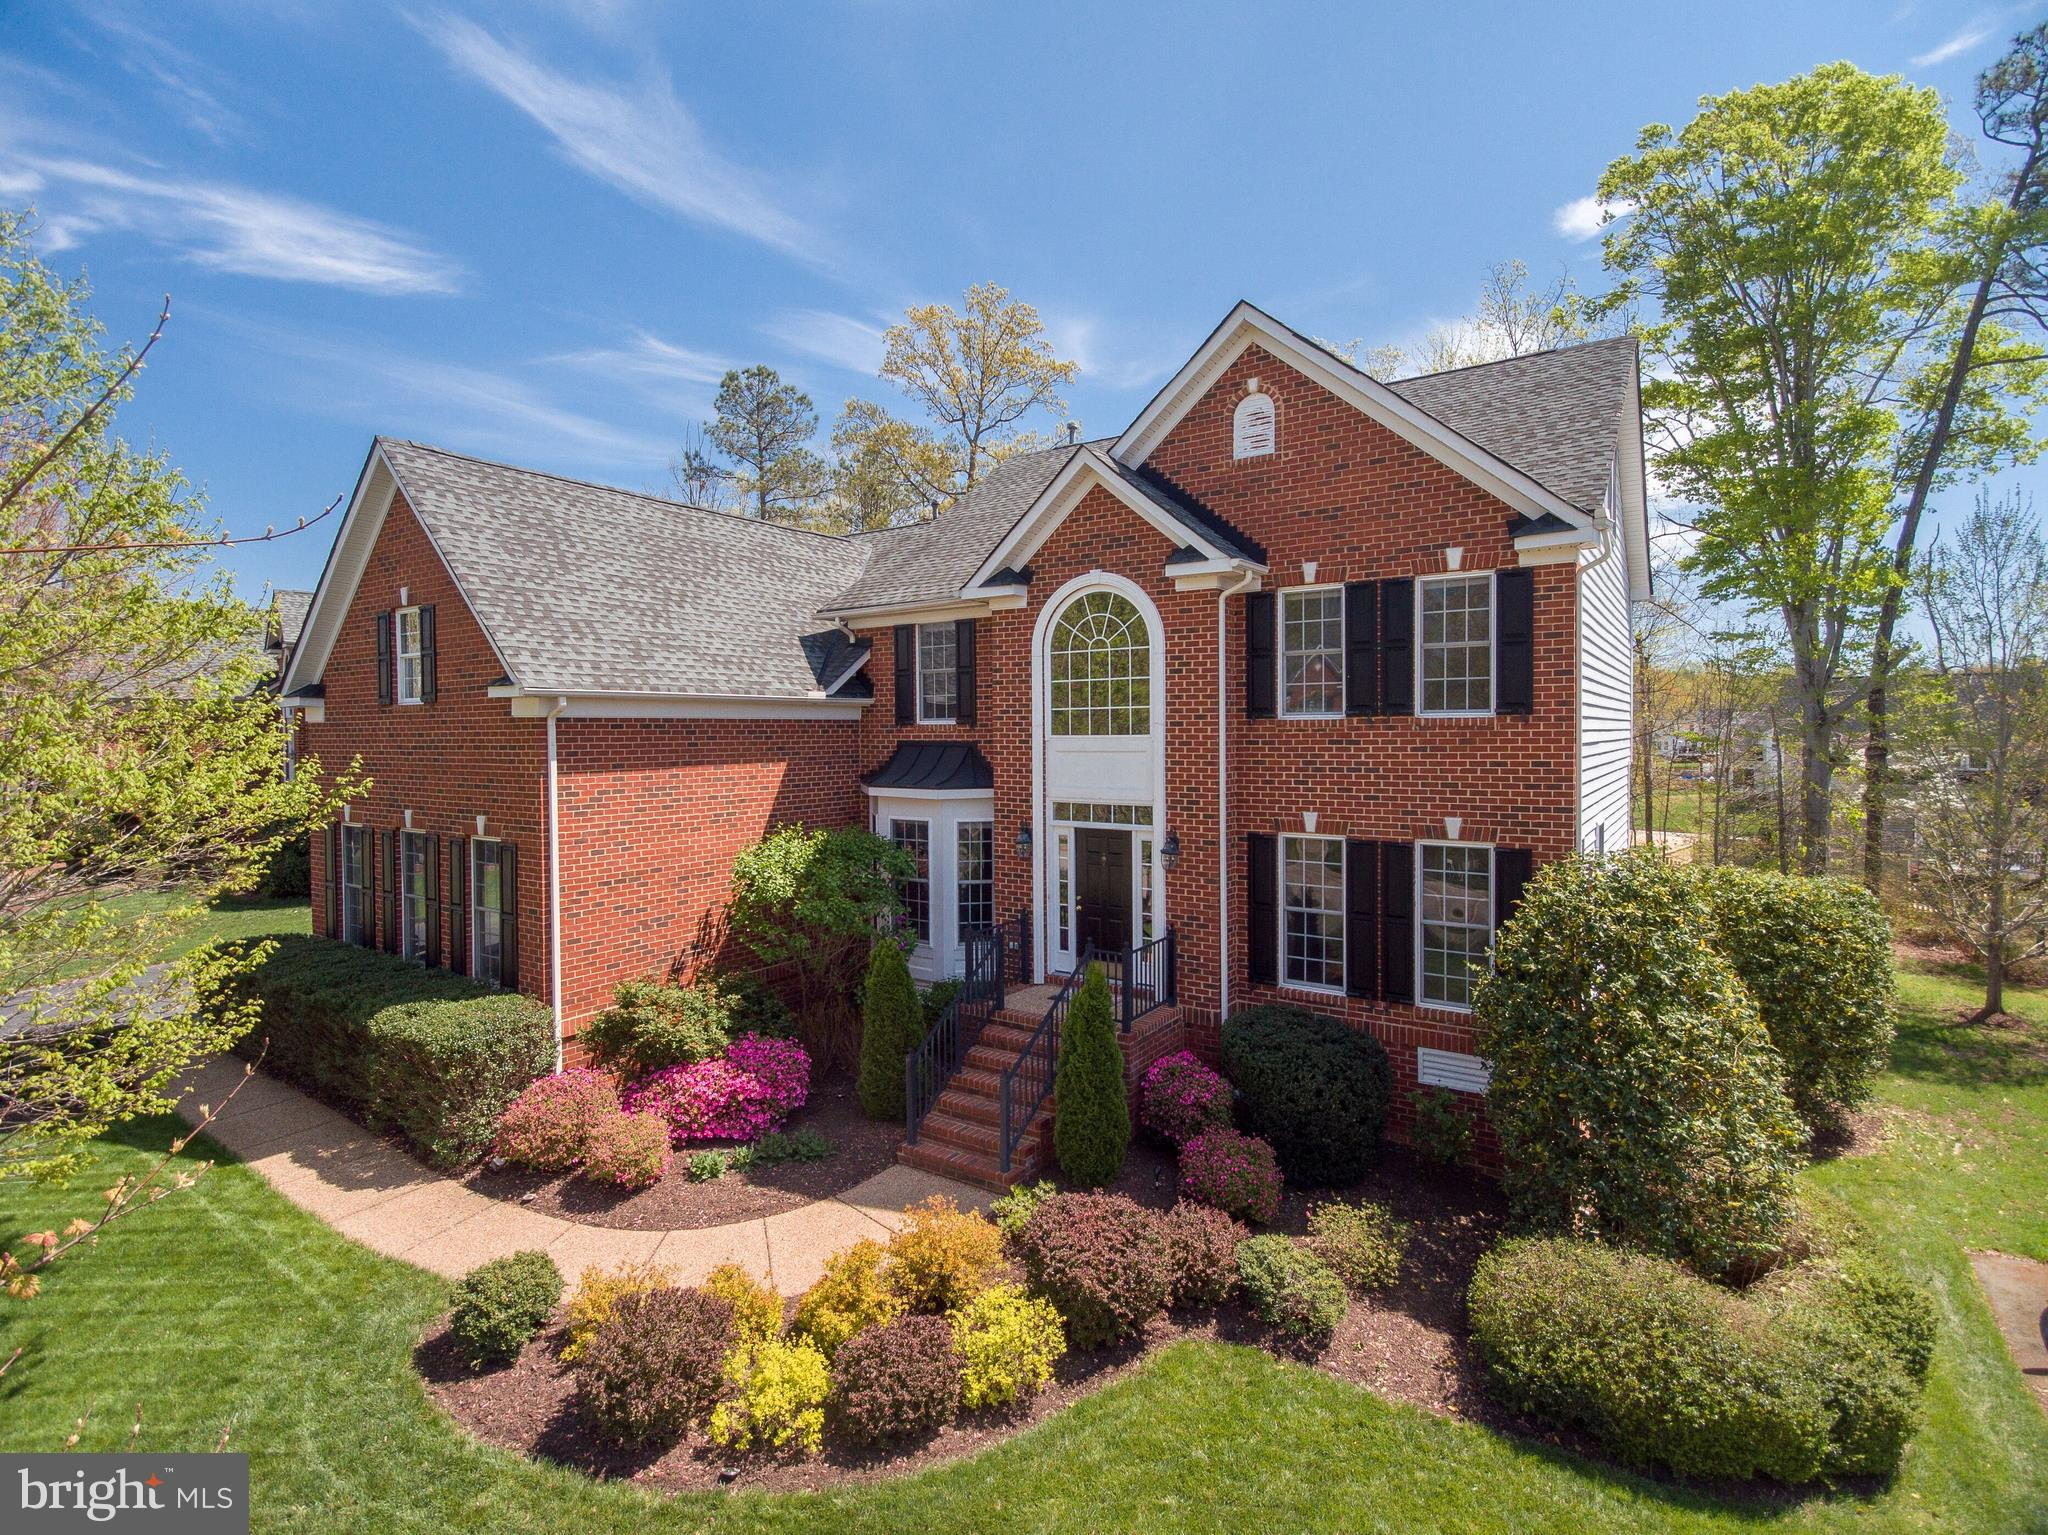 6107 LILTING BRANCH WAY, MOSELEY, VA 23120